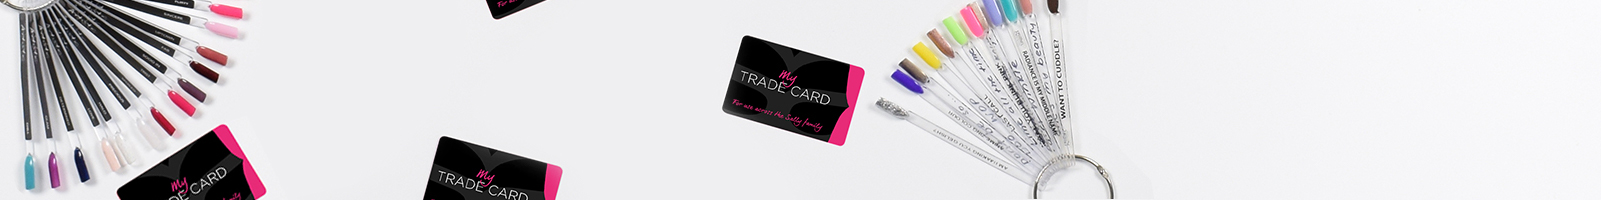 Apply for a Trade Card today